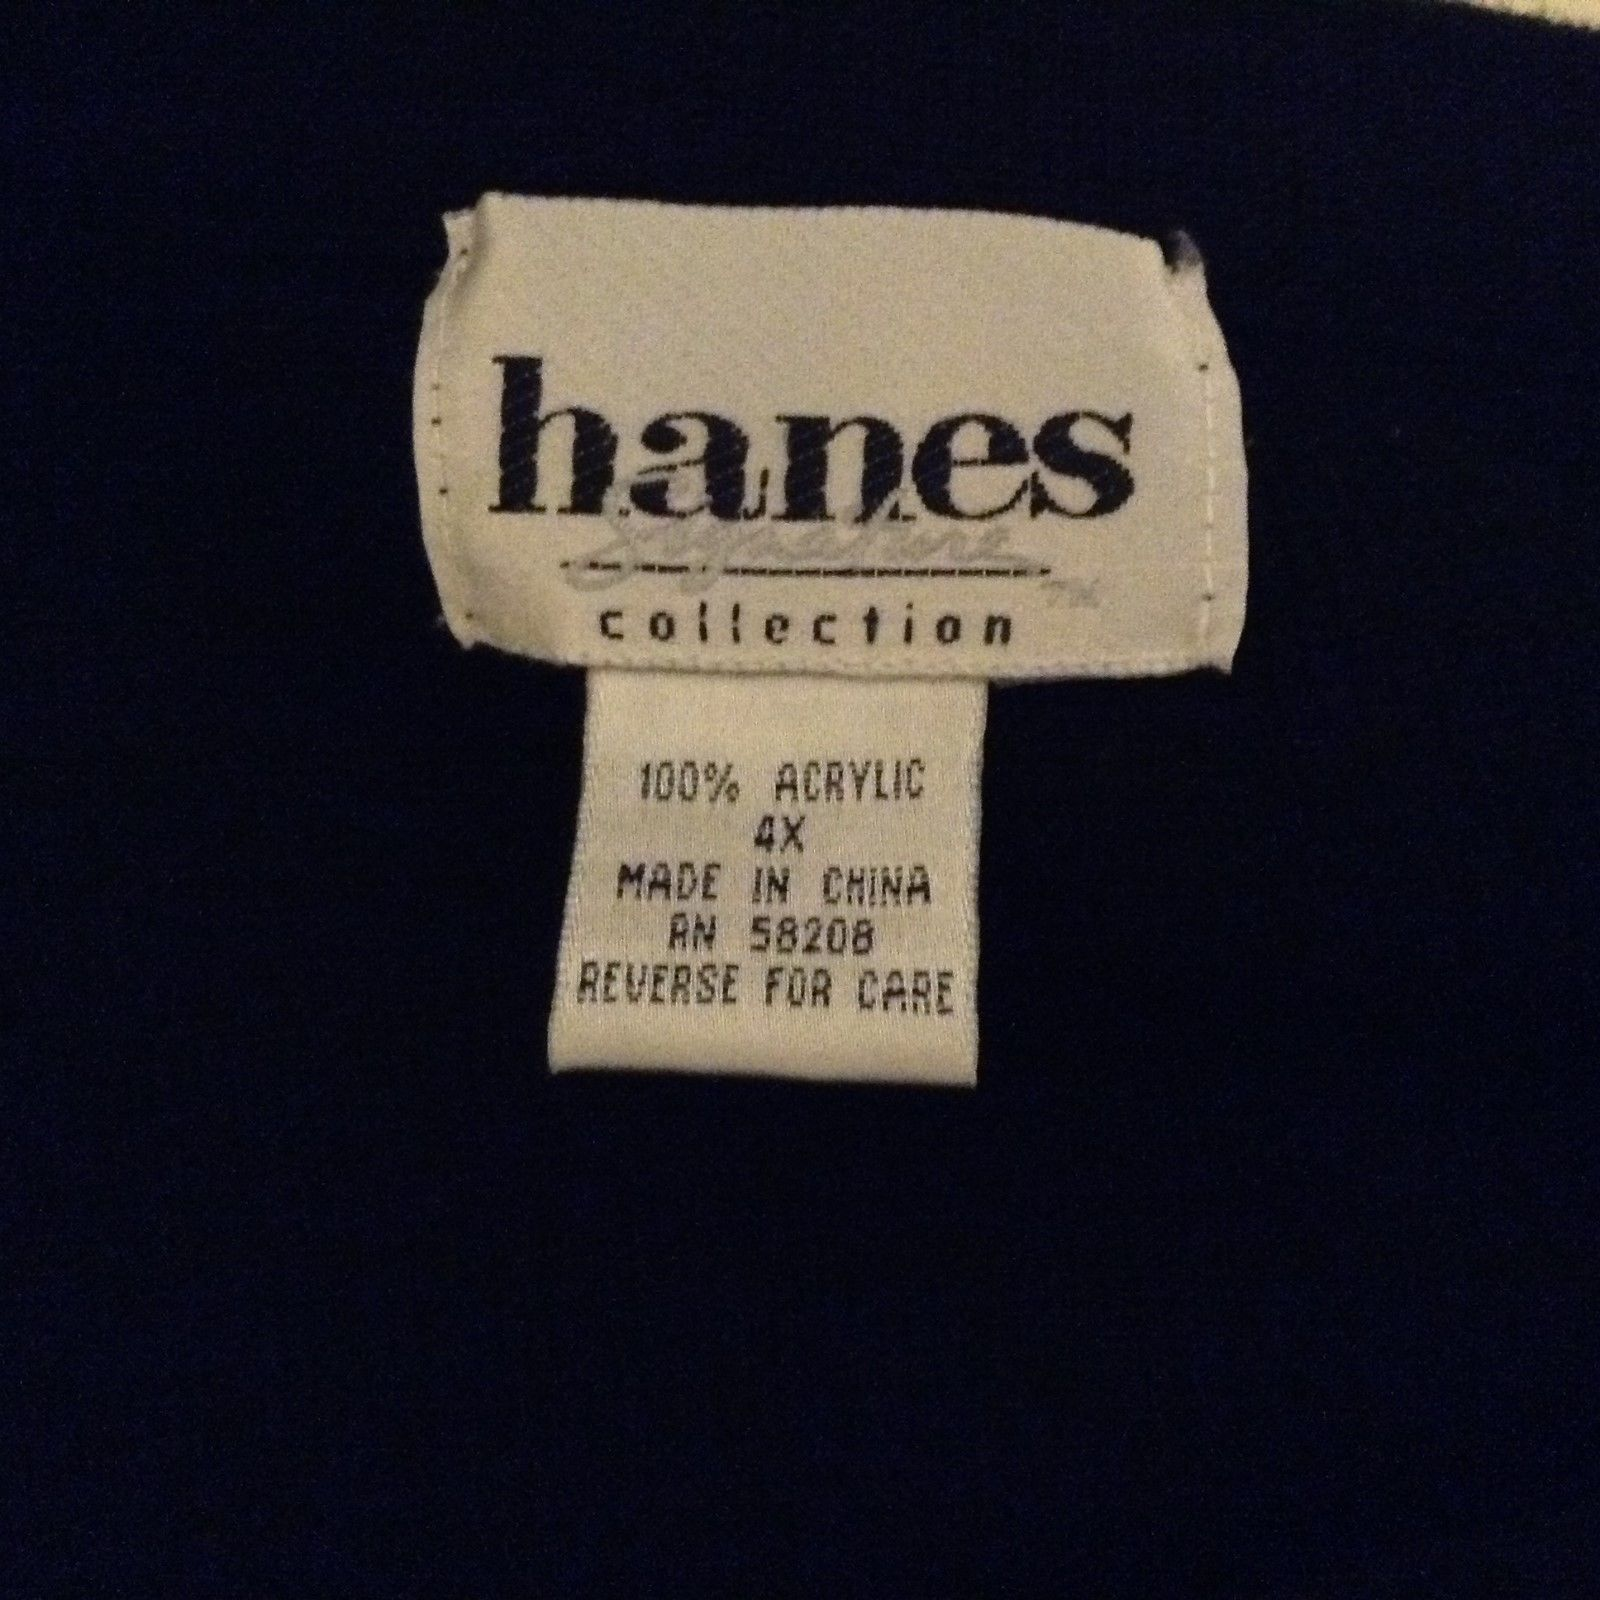 Hanes Signature Collection Black Stretchy Skirt Sz 4X